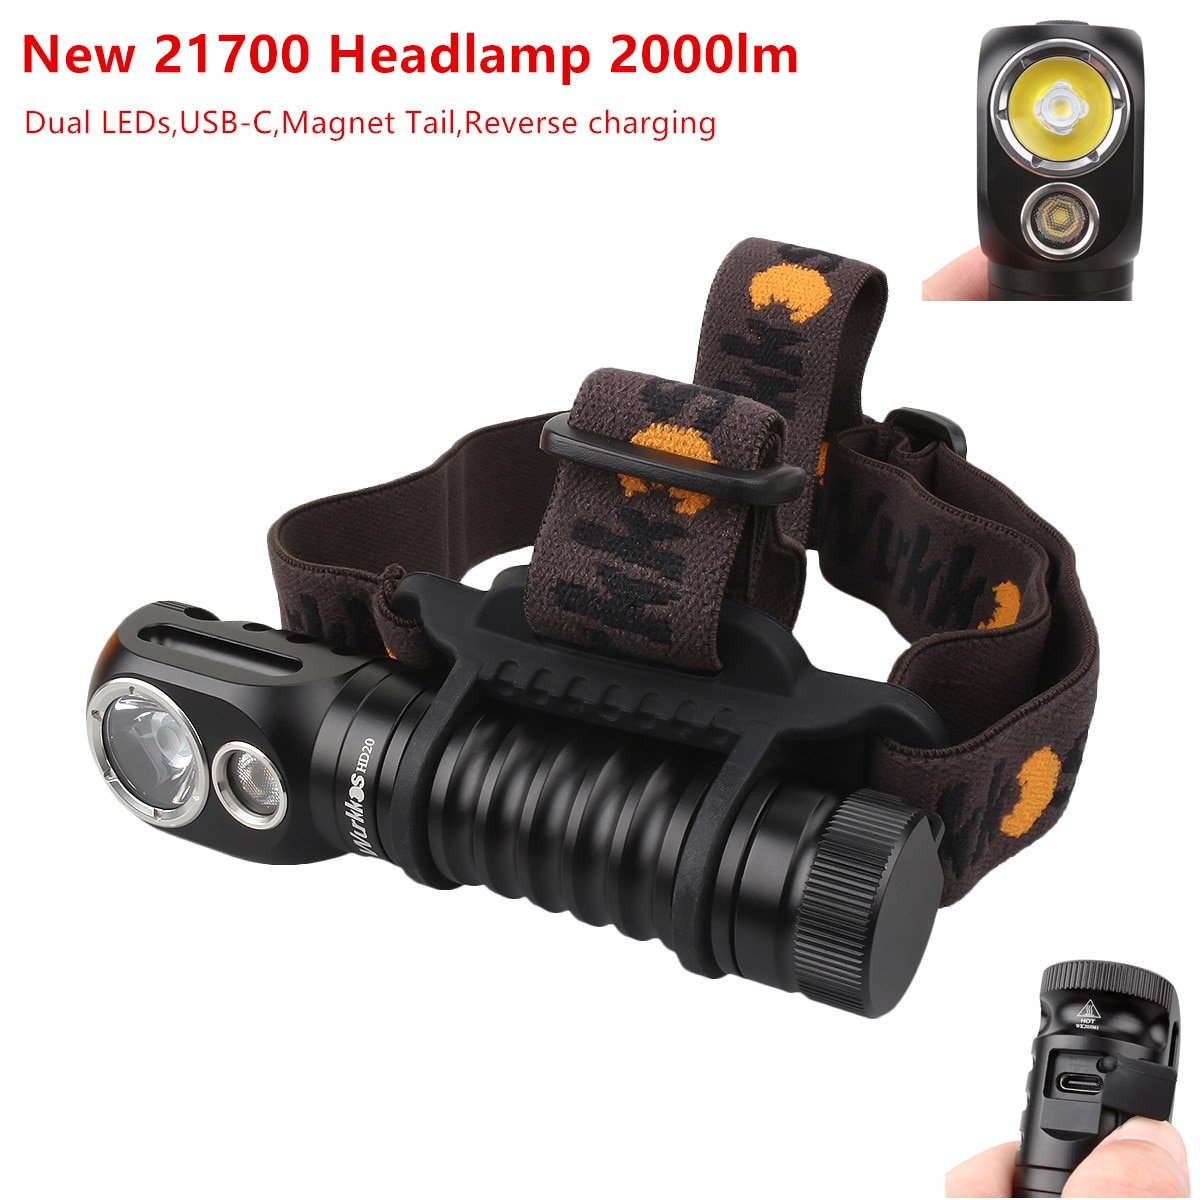 Wurkkos HD20 USB C Rechargeable Headlamp 21700 LED light 2000lm Dual LED LH351D XPL with Reverse Charge Magnetic Tail